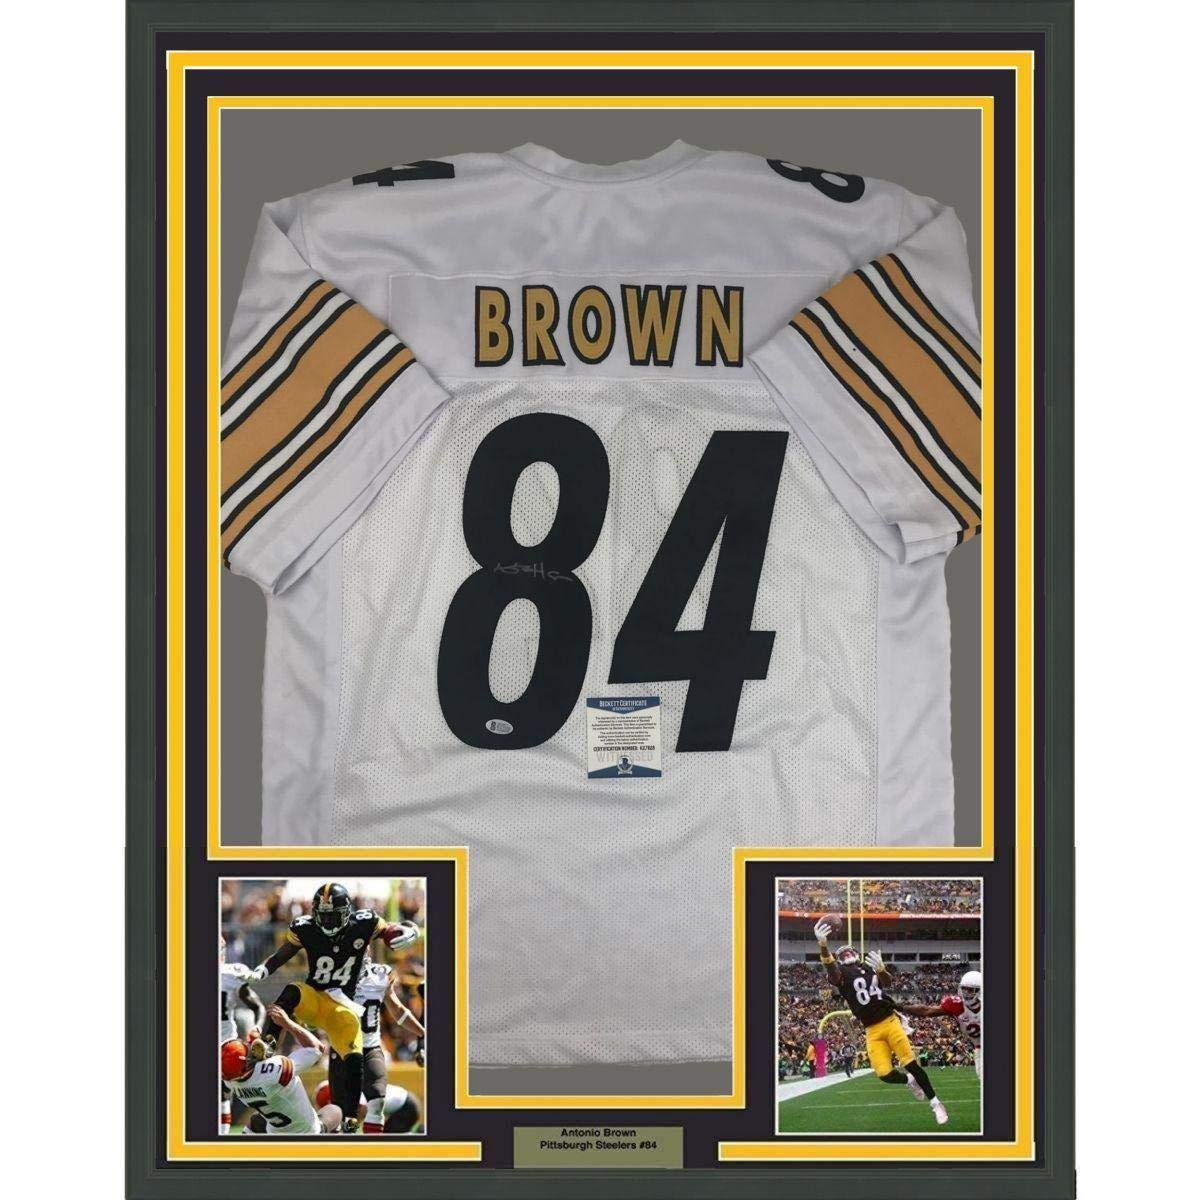 Antonio Brown Signed Jersey - FRAMED 33x42 White Beckett BAS COA - Beckett  Authentication - Autographed NFL Jerseys at Amazon s Sports Collectibles  Store 9754f1b9c